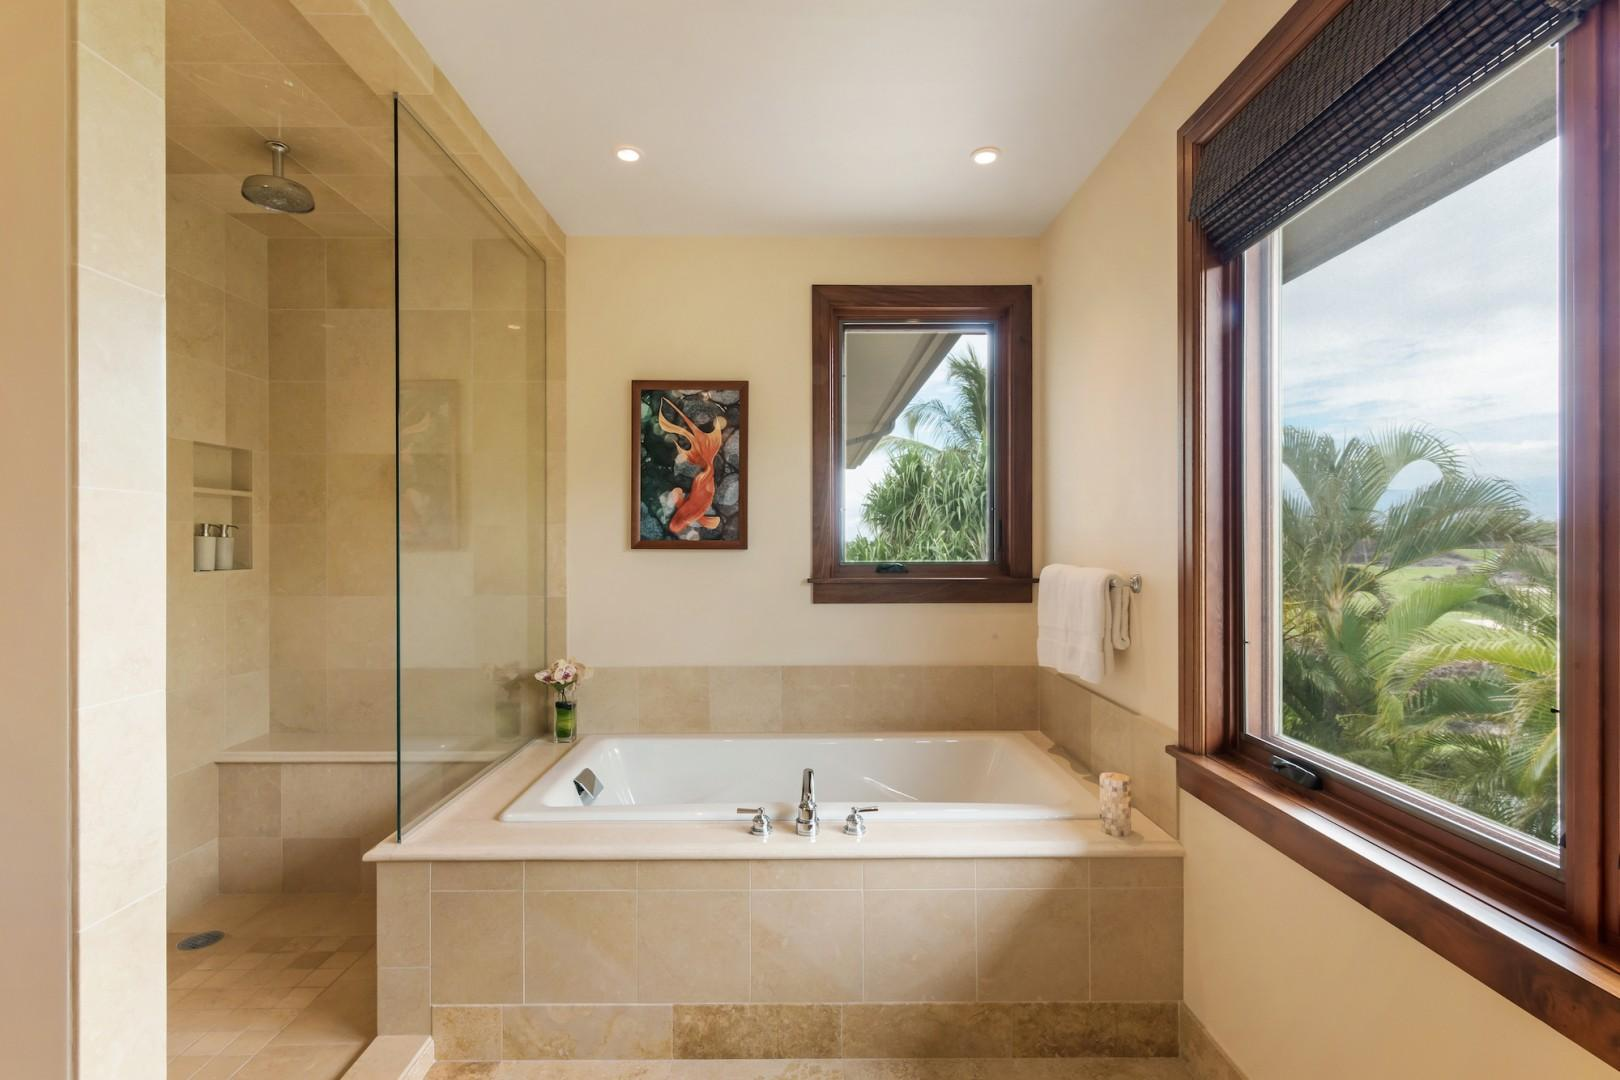 Upstairs Master Ensuite Bath w/ Glass Shower, Luxurious Soaking Tub & Picture Window.